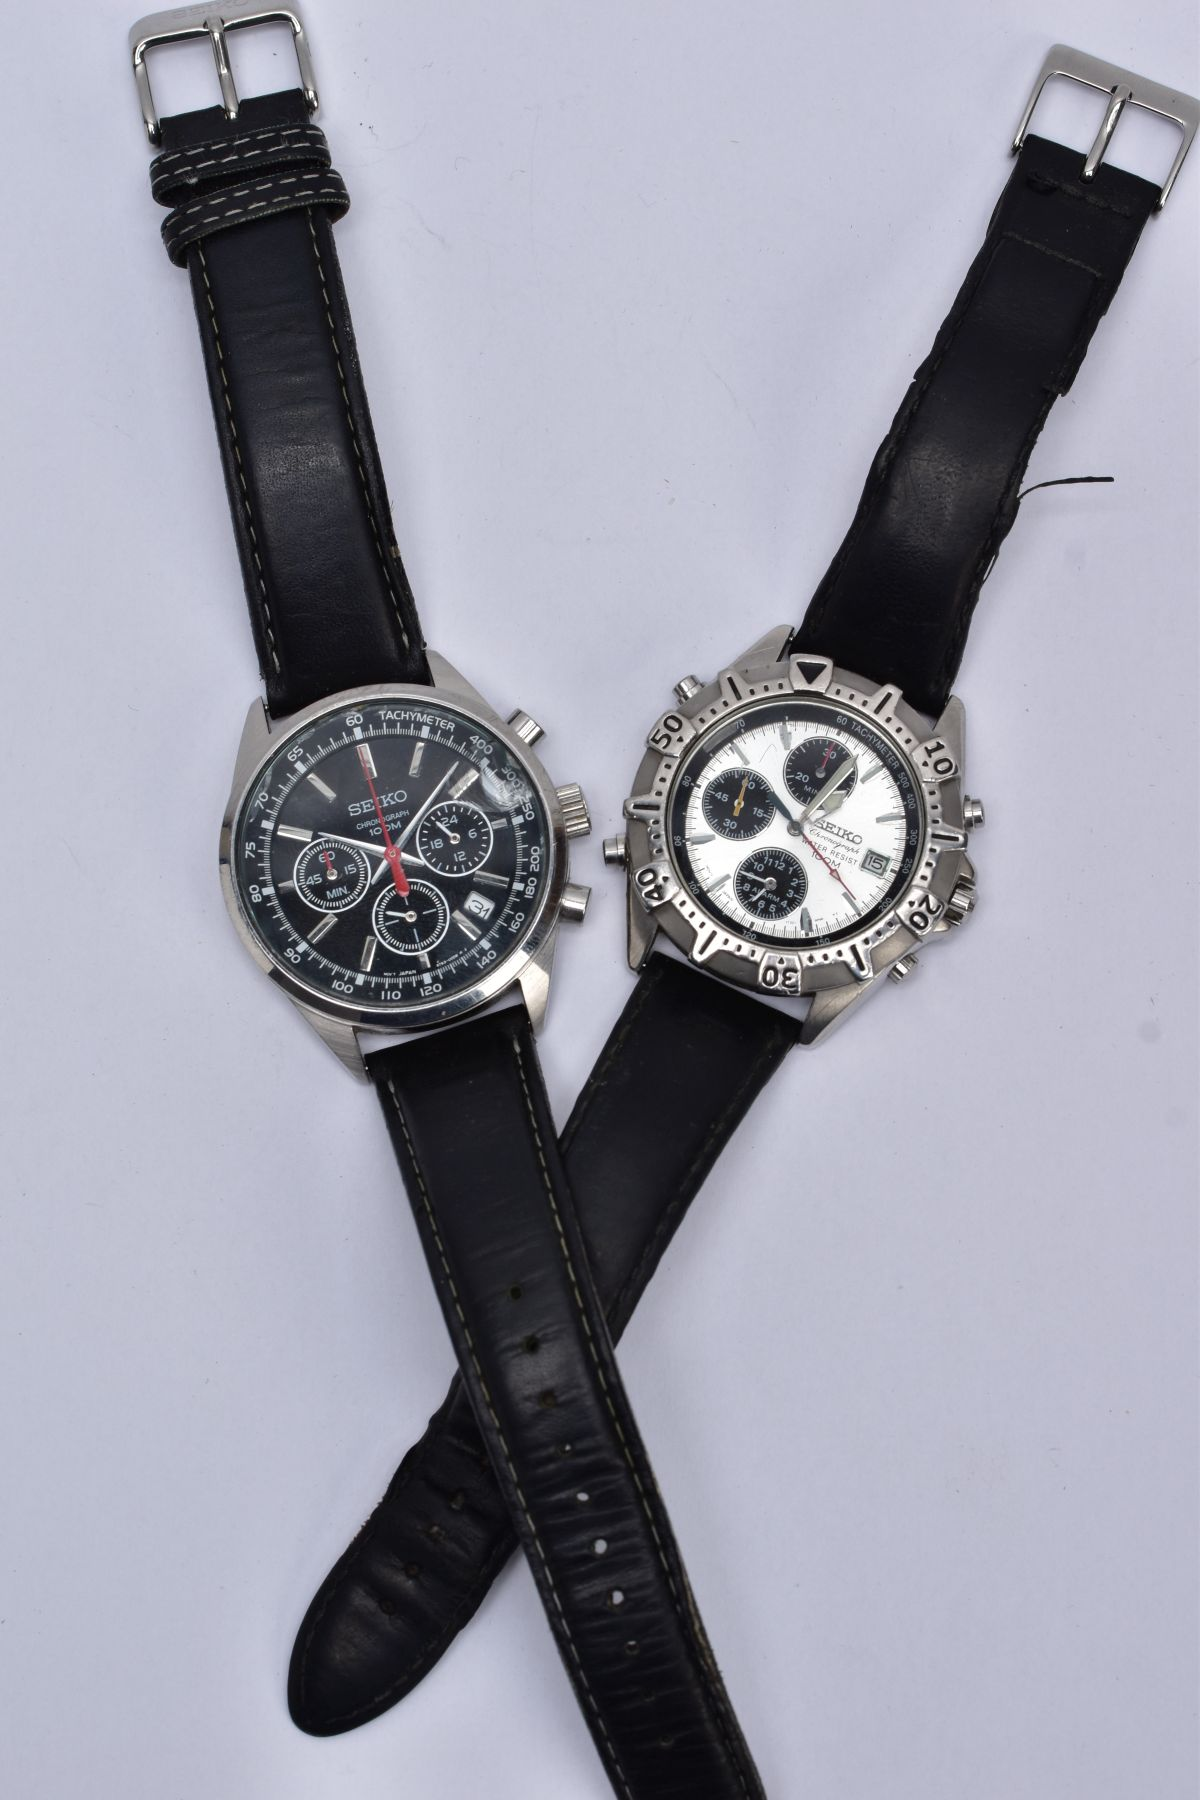 TWO GENTS 'SEIKO CHRONOGRAPH' WRISTWATCHES, the first with round black dial signed 'Seiko